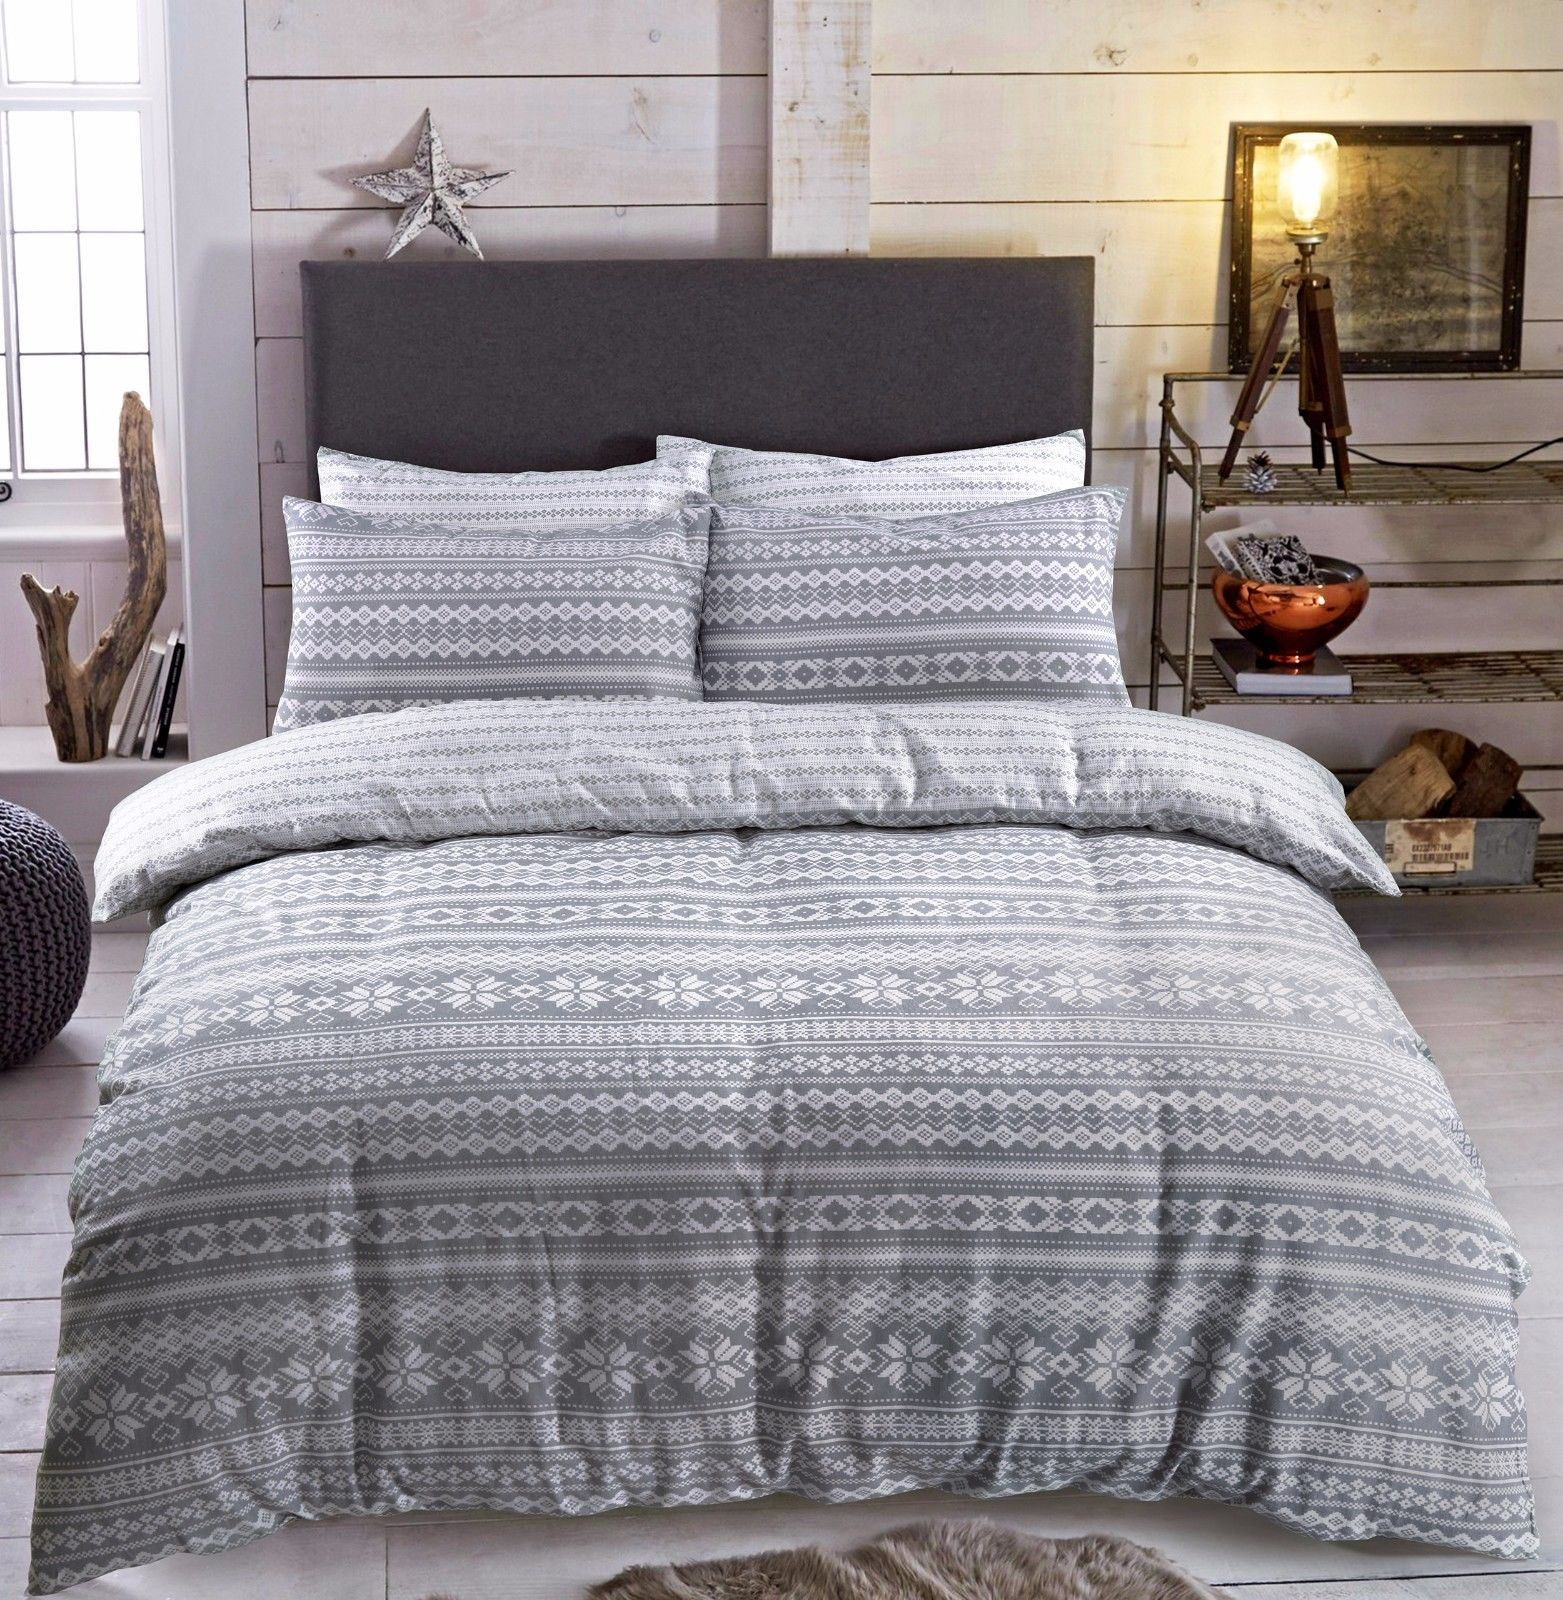 Che Cos E Il Copripiumino.Christmas Brushed Cotton Flannel Reversible Bed Quilt Set Duvet